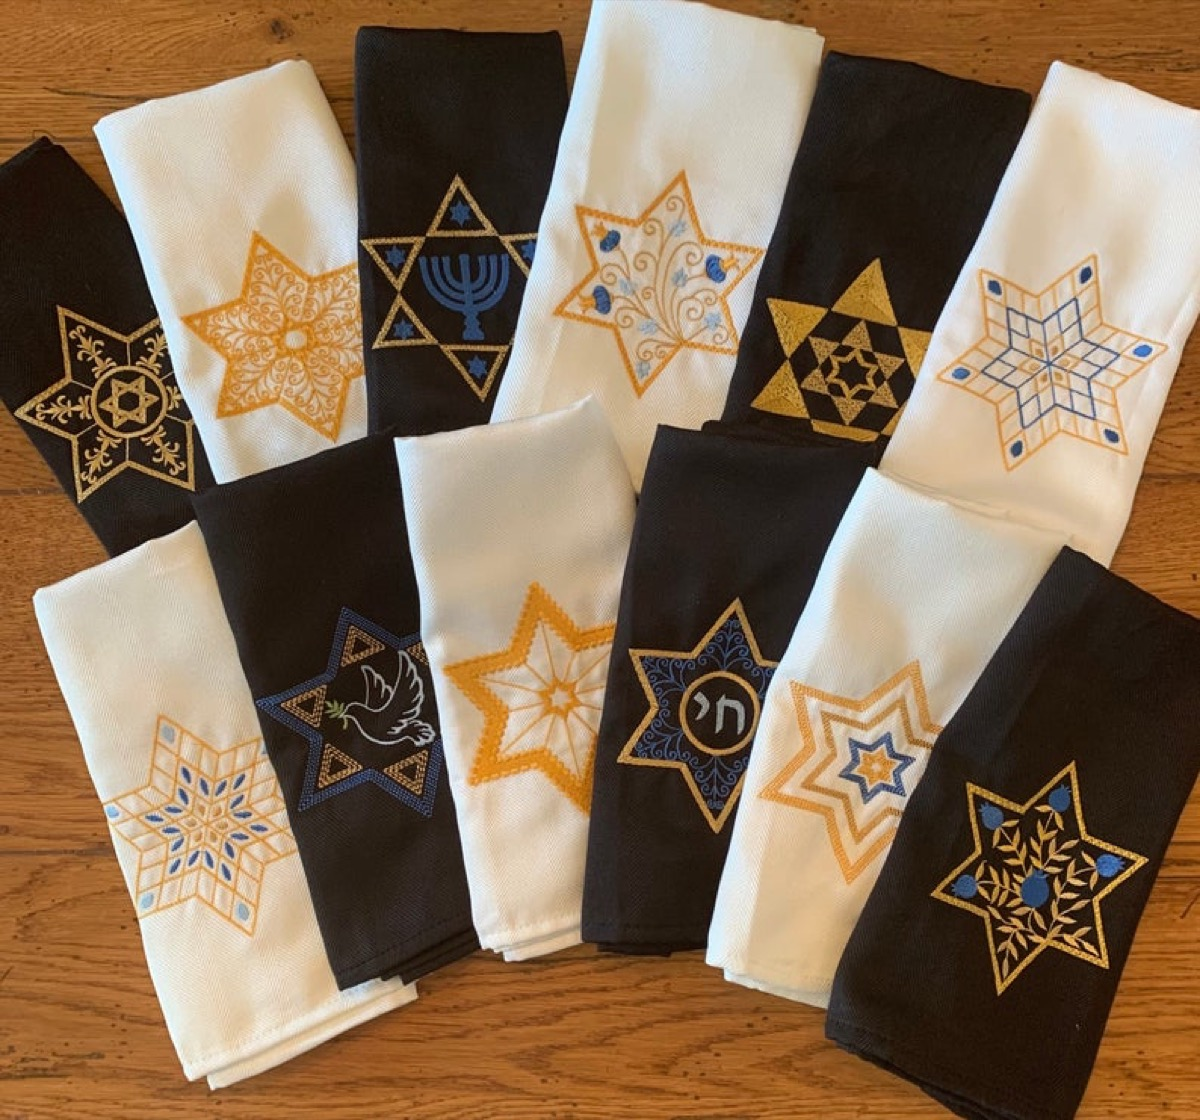 black and white cloth napkins with the star of david on them, hanukkah decorations